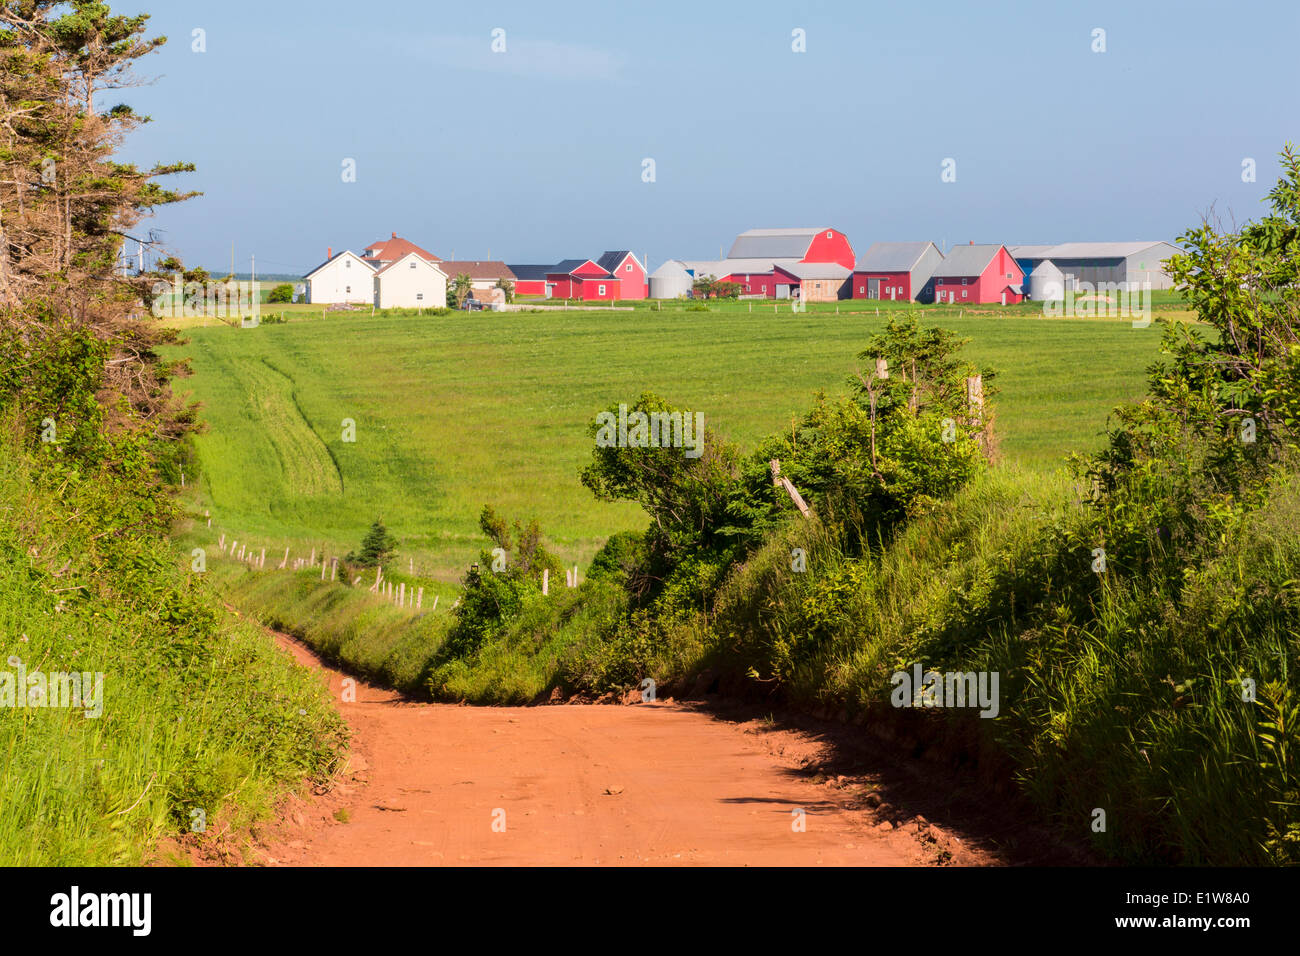 Country road, Park Corner, Prince Edward Island, Canada - Stock Image